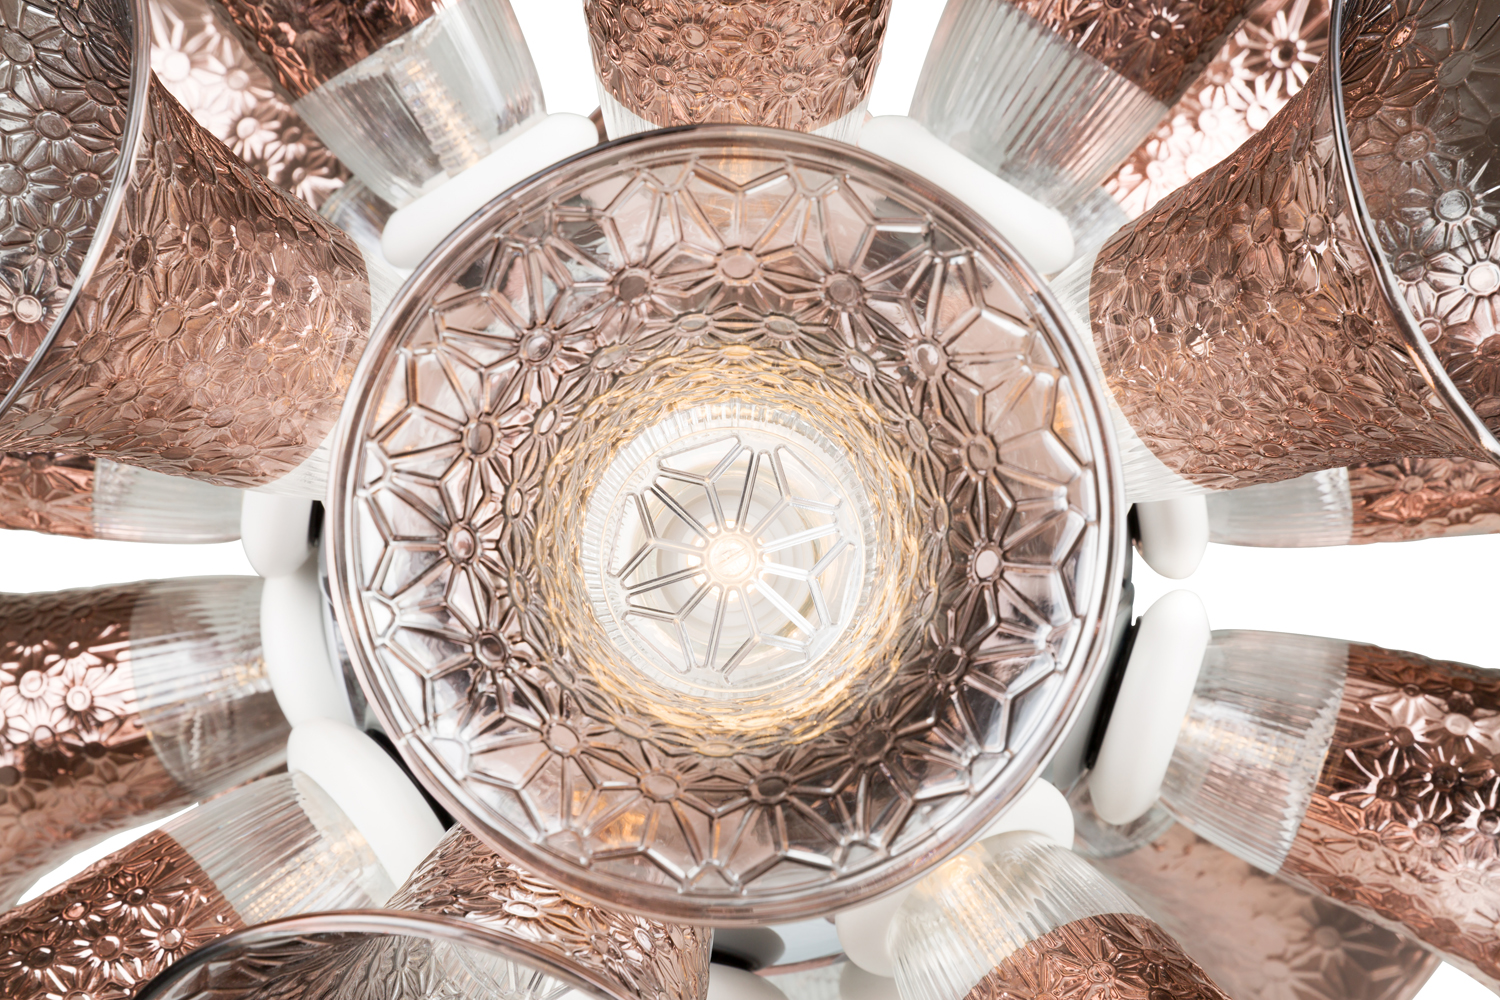 chalice_chrome_detail_02_moooi_300dpi